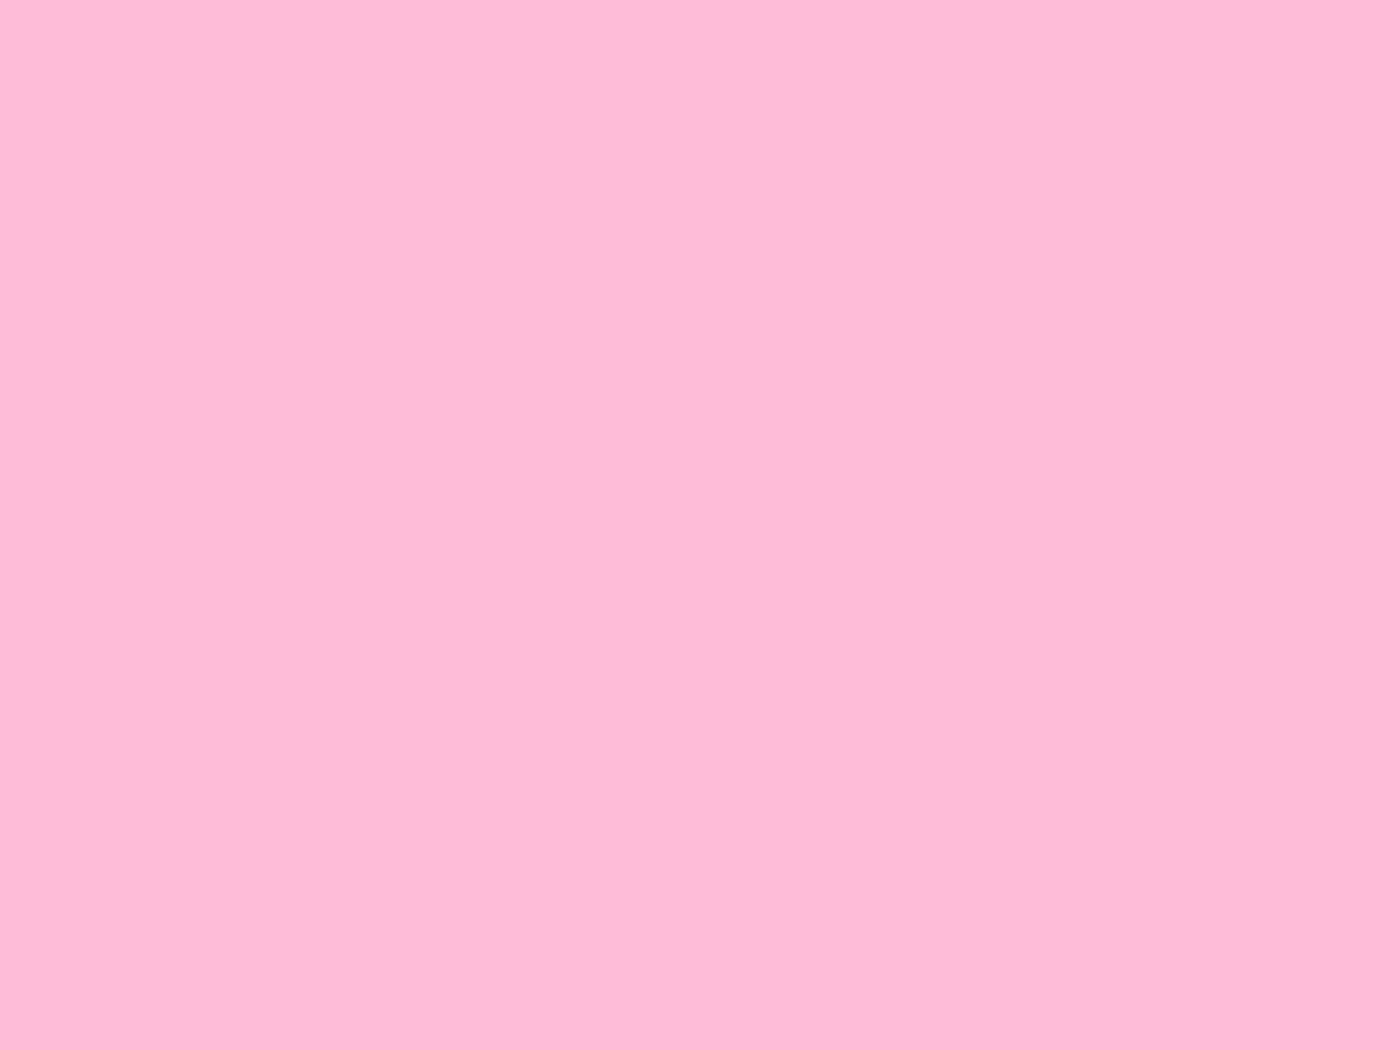 1400x1050 Cotton Candy Solid Color Background